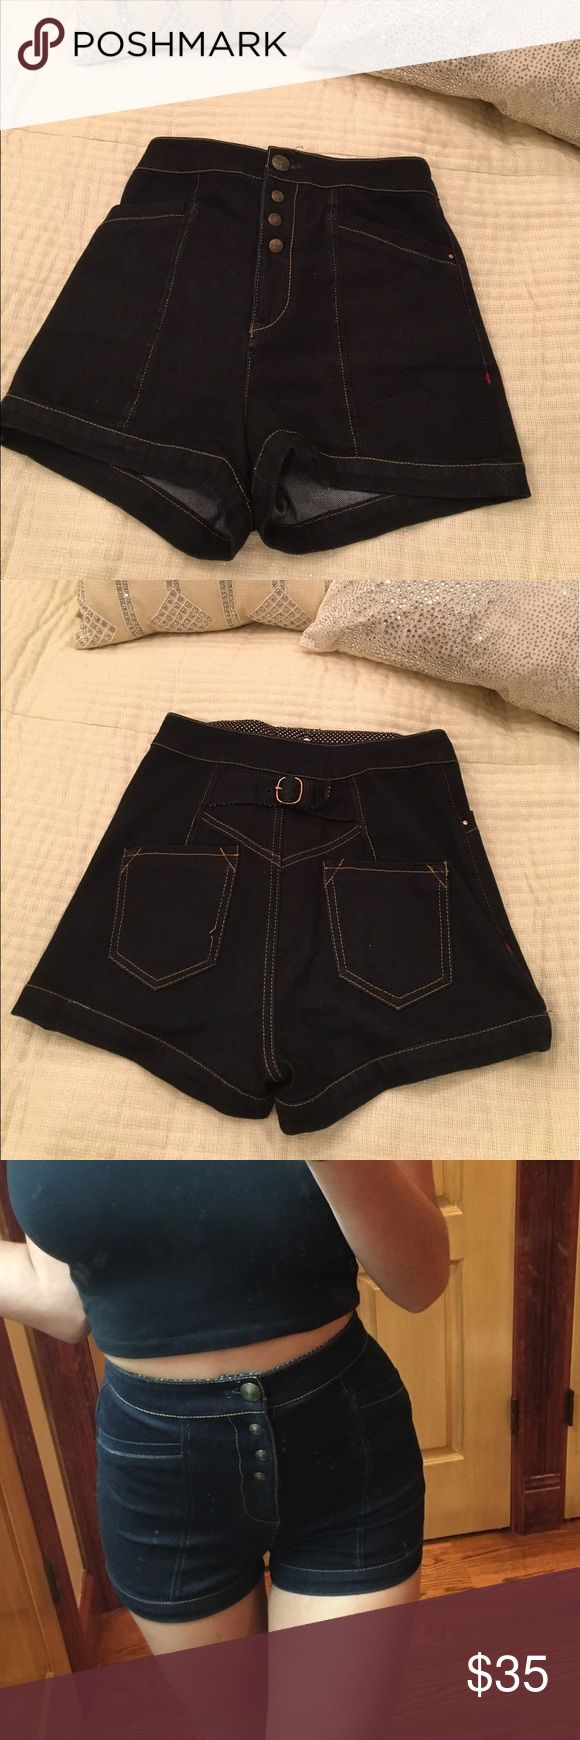 A/X Highwasted shorts Size petite/small A/X Armani Exchange Shorts Jean Shorts